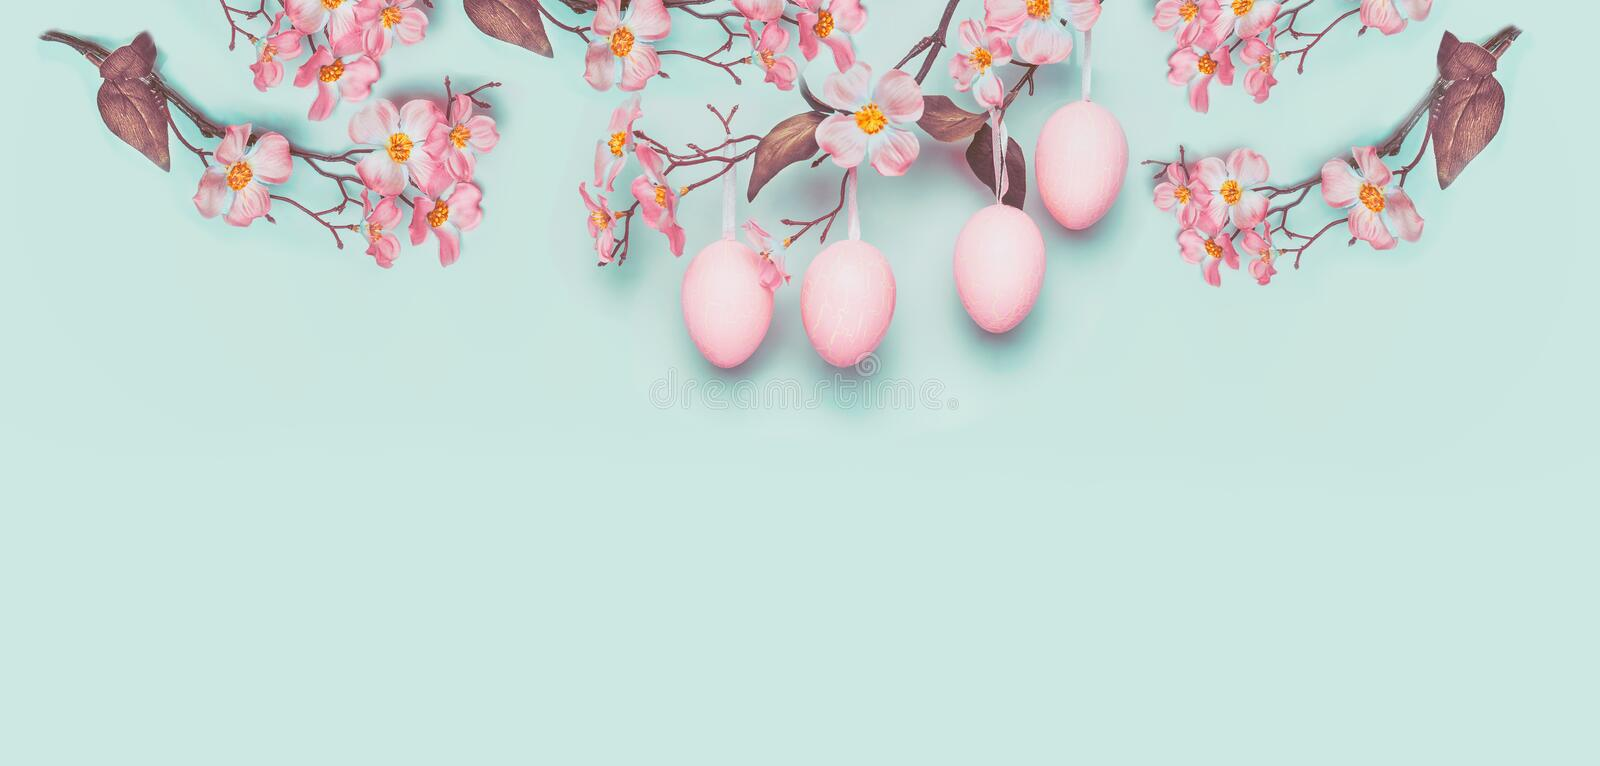 Easter banner with hanging pastel pink Easter eggs and spring blossom at light at blue turquoise background. Copy space stock photos